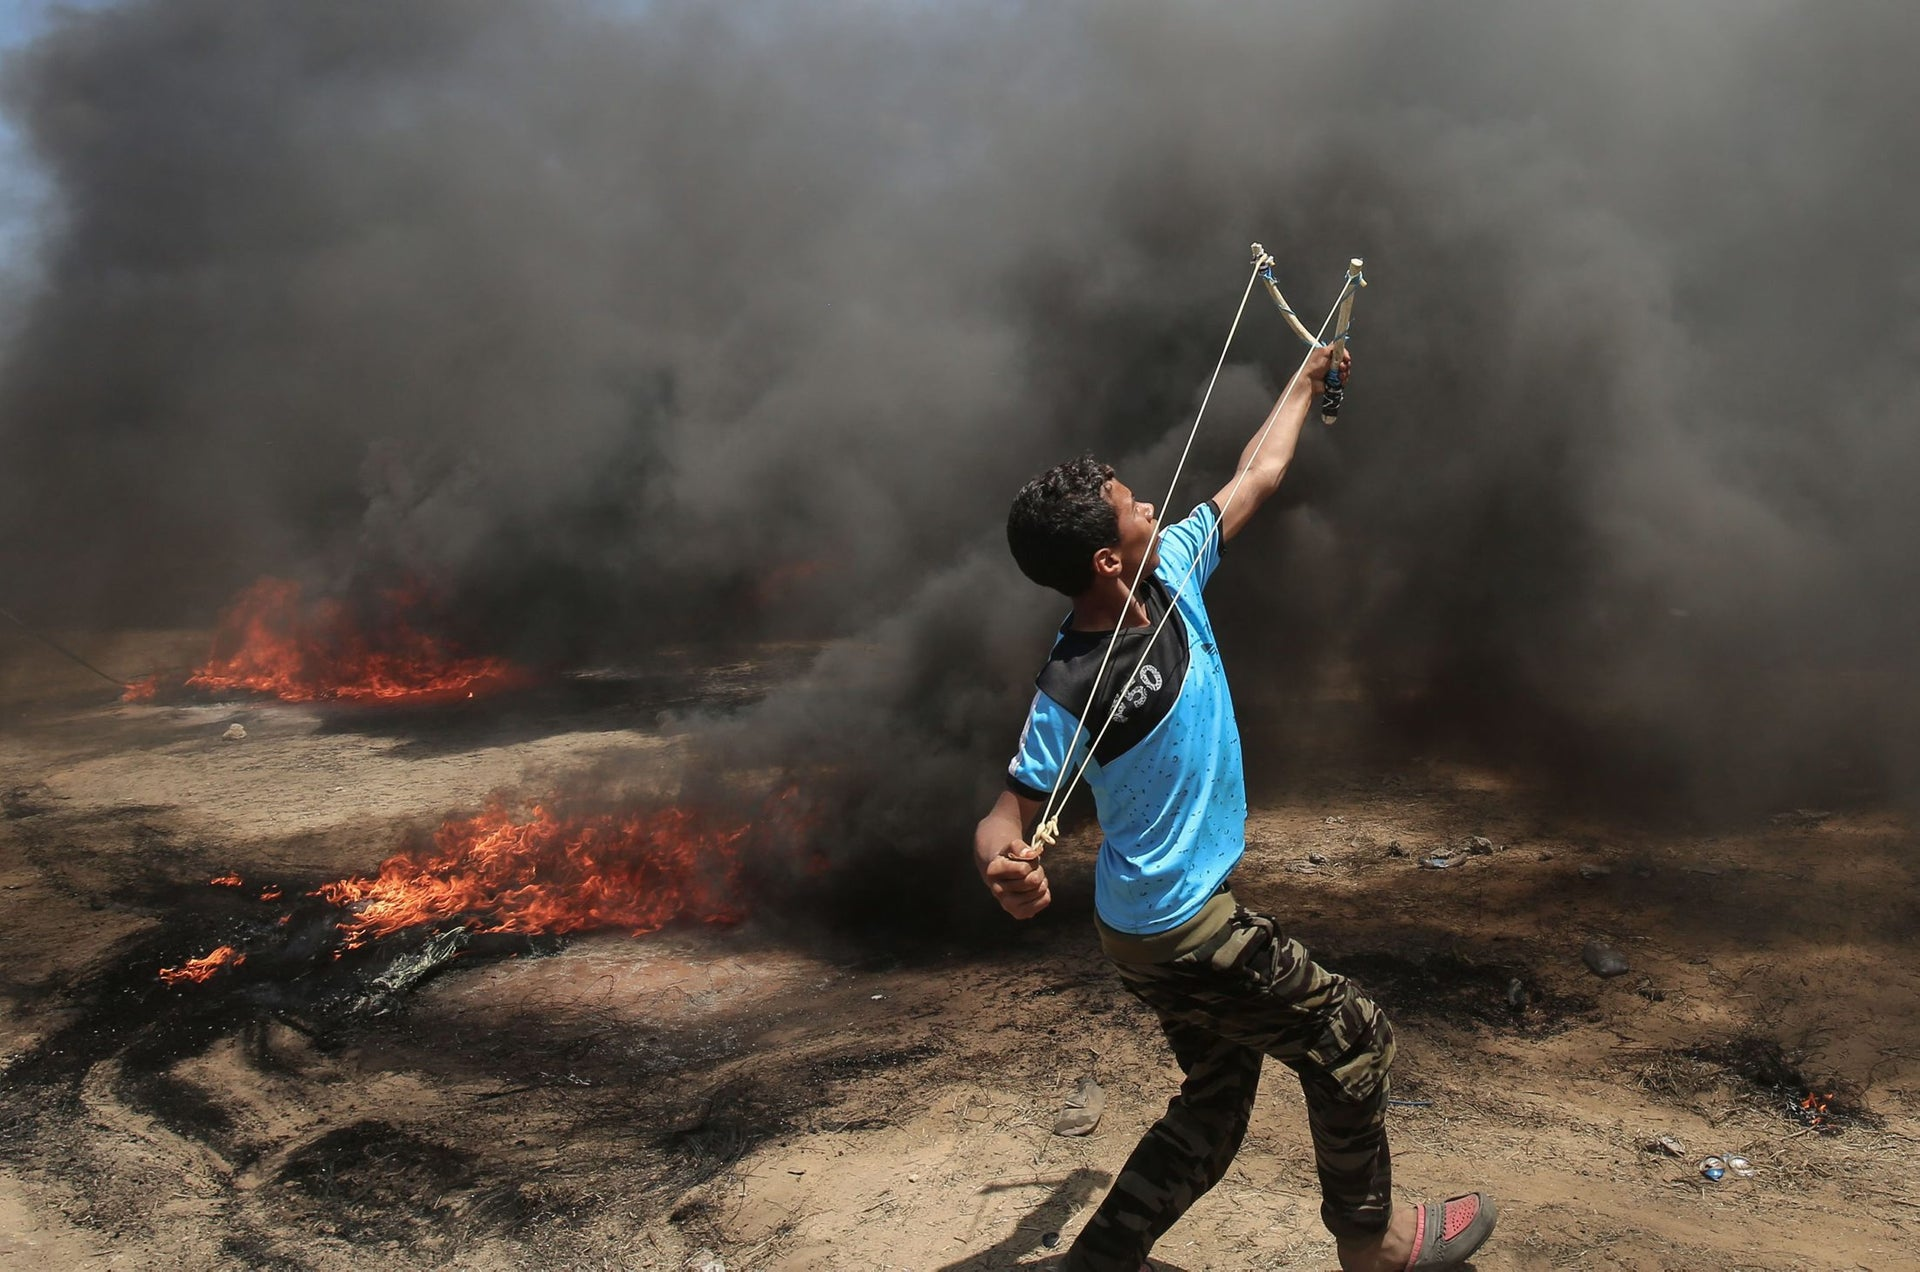 A Palestinian man uses a slingshot during clashes with Israeli forces along the border with the Gaza strip, May 14, 2018